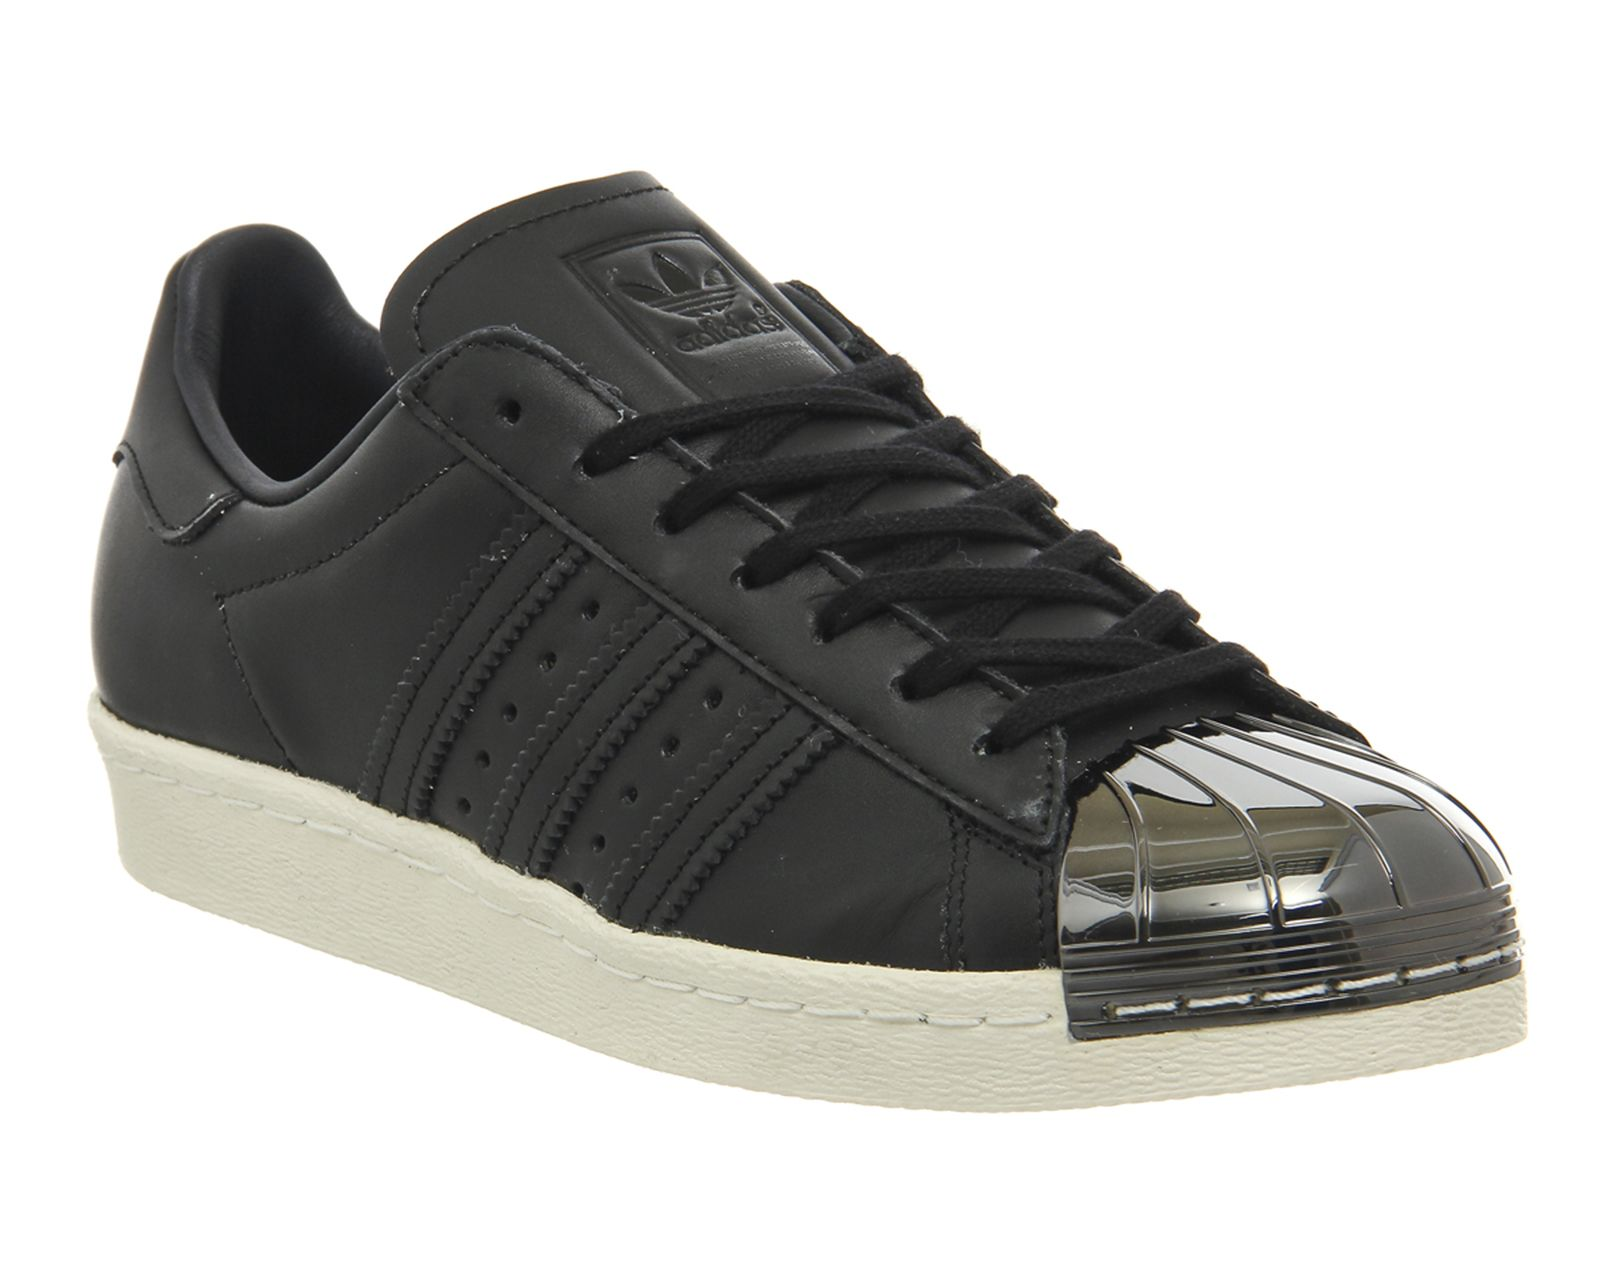 db86e61392af adidas exclusive shoes - Travbeast